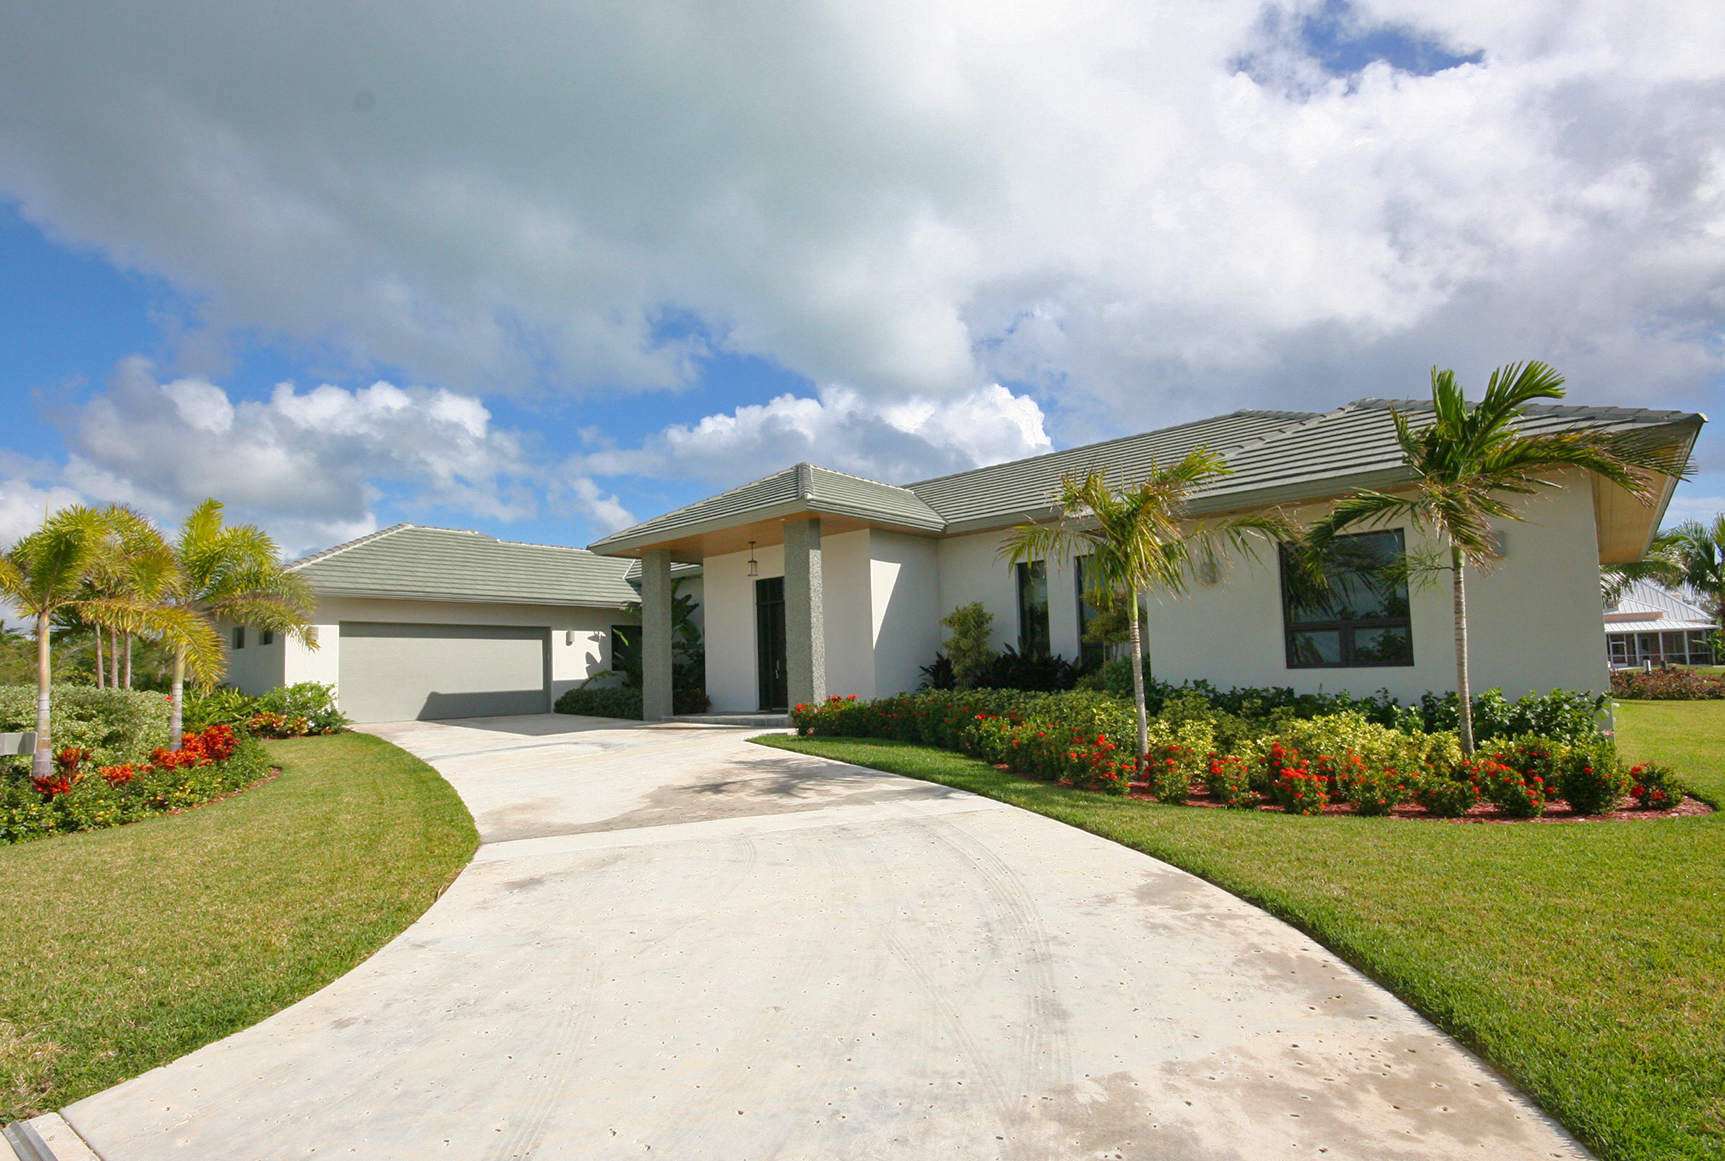 Single Family Home for Sale at Spectacular Newly Built Canal front Luxury Home Fortune Bay, Grand Bahama, Bahamas